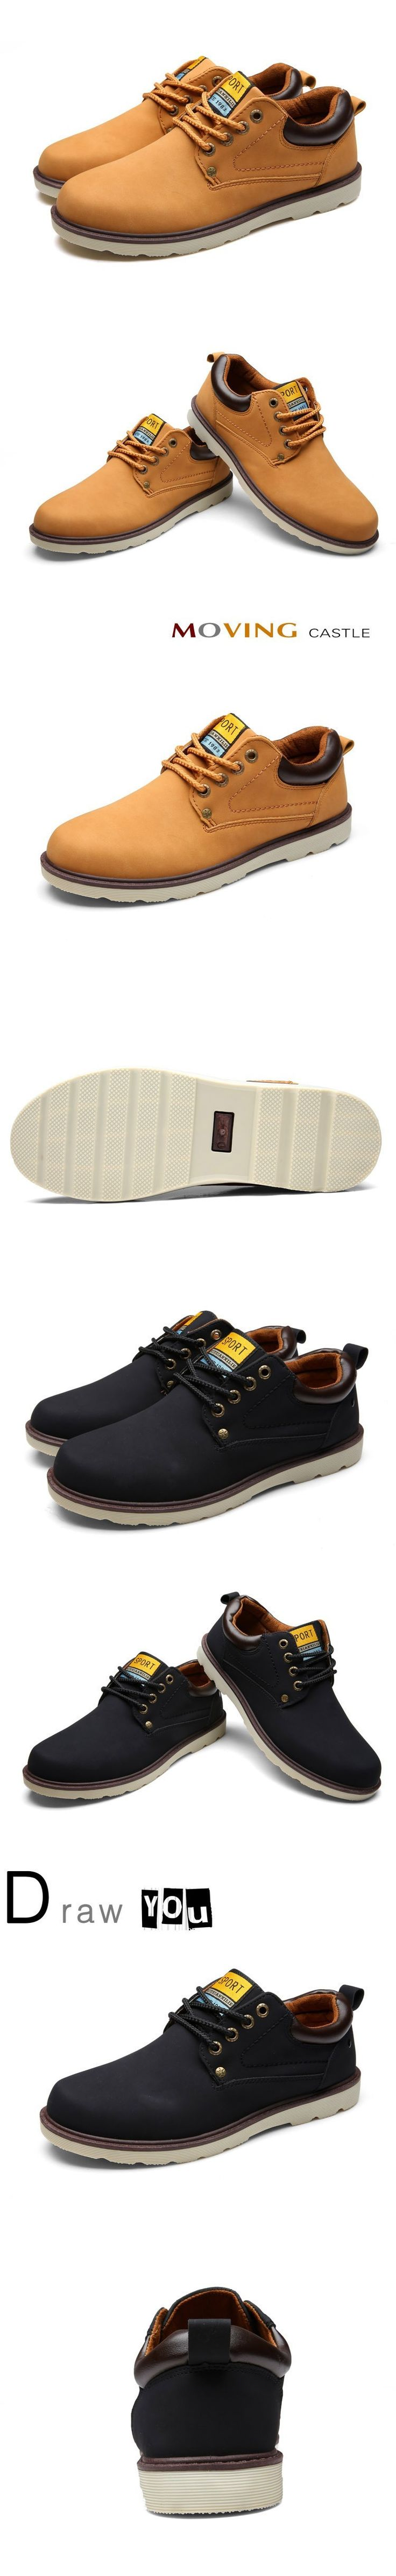 2016 Hot Sale Man Spring Autumn Shoes Lace-up Style Pu Leather Fashion Trend Casual Round Toe Safety Men Work Shoe